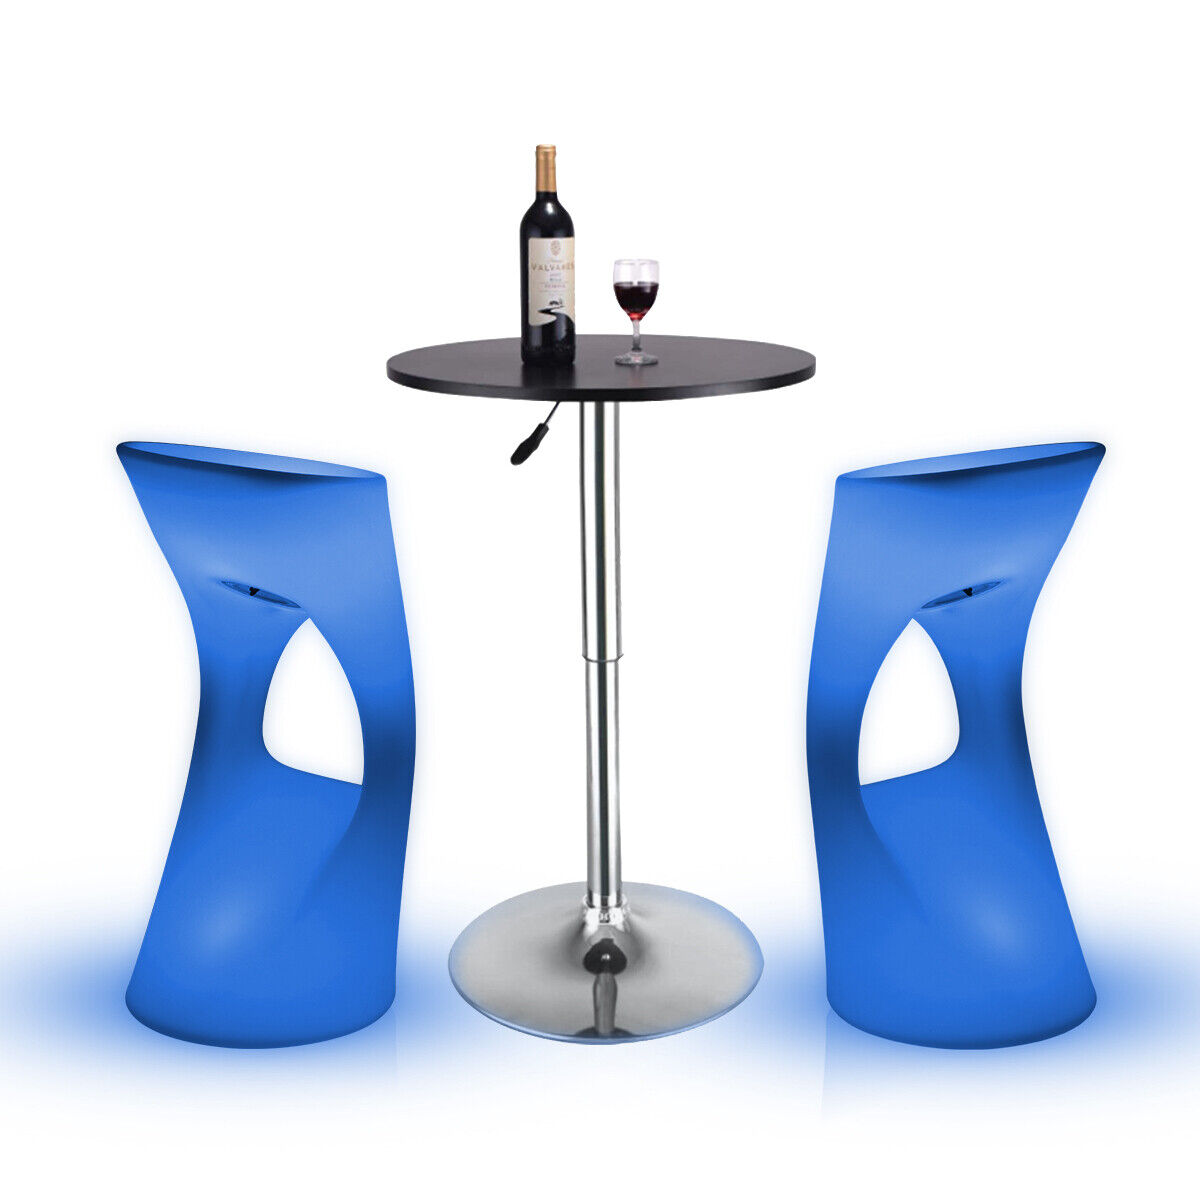 Changing LED Light Up Furniture Chair Bar Stool Barstool Pub Club Lounge Party